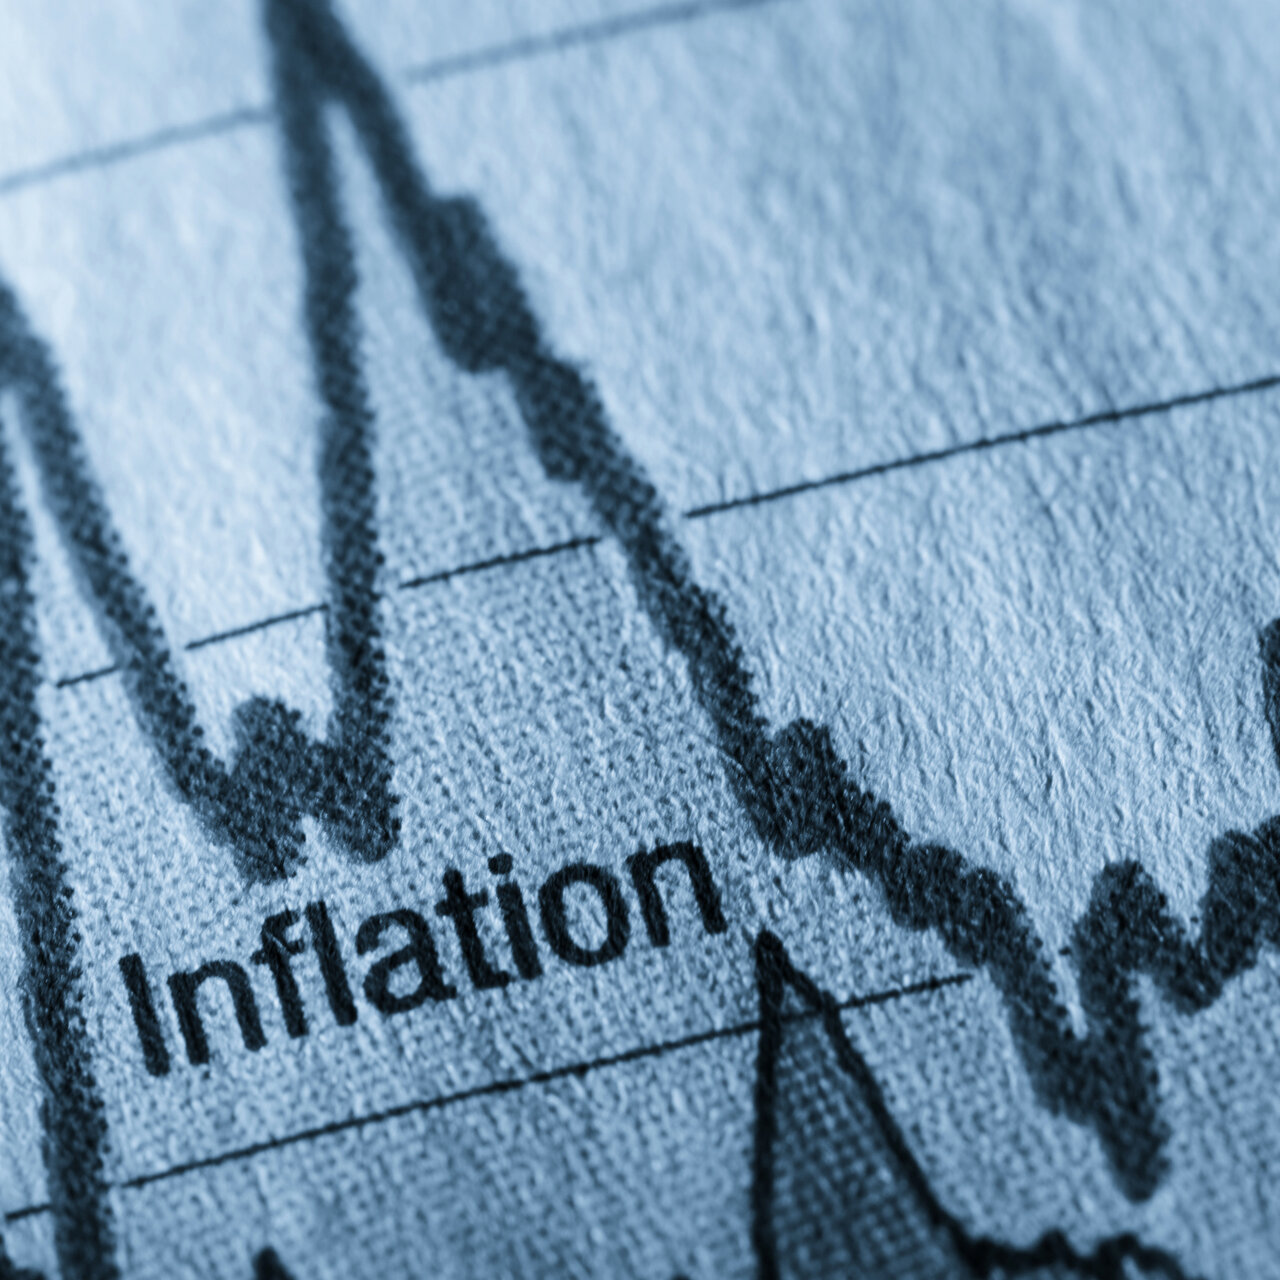 Eurozone: April core inflation revised upward to 1 3% - TDS